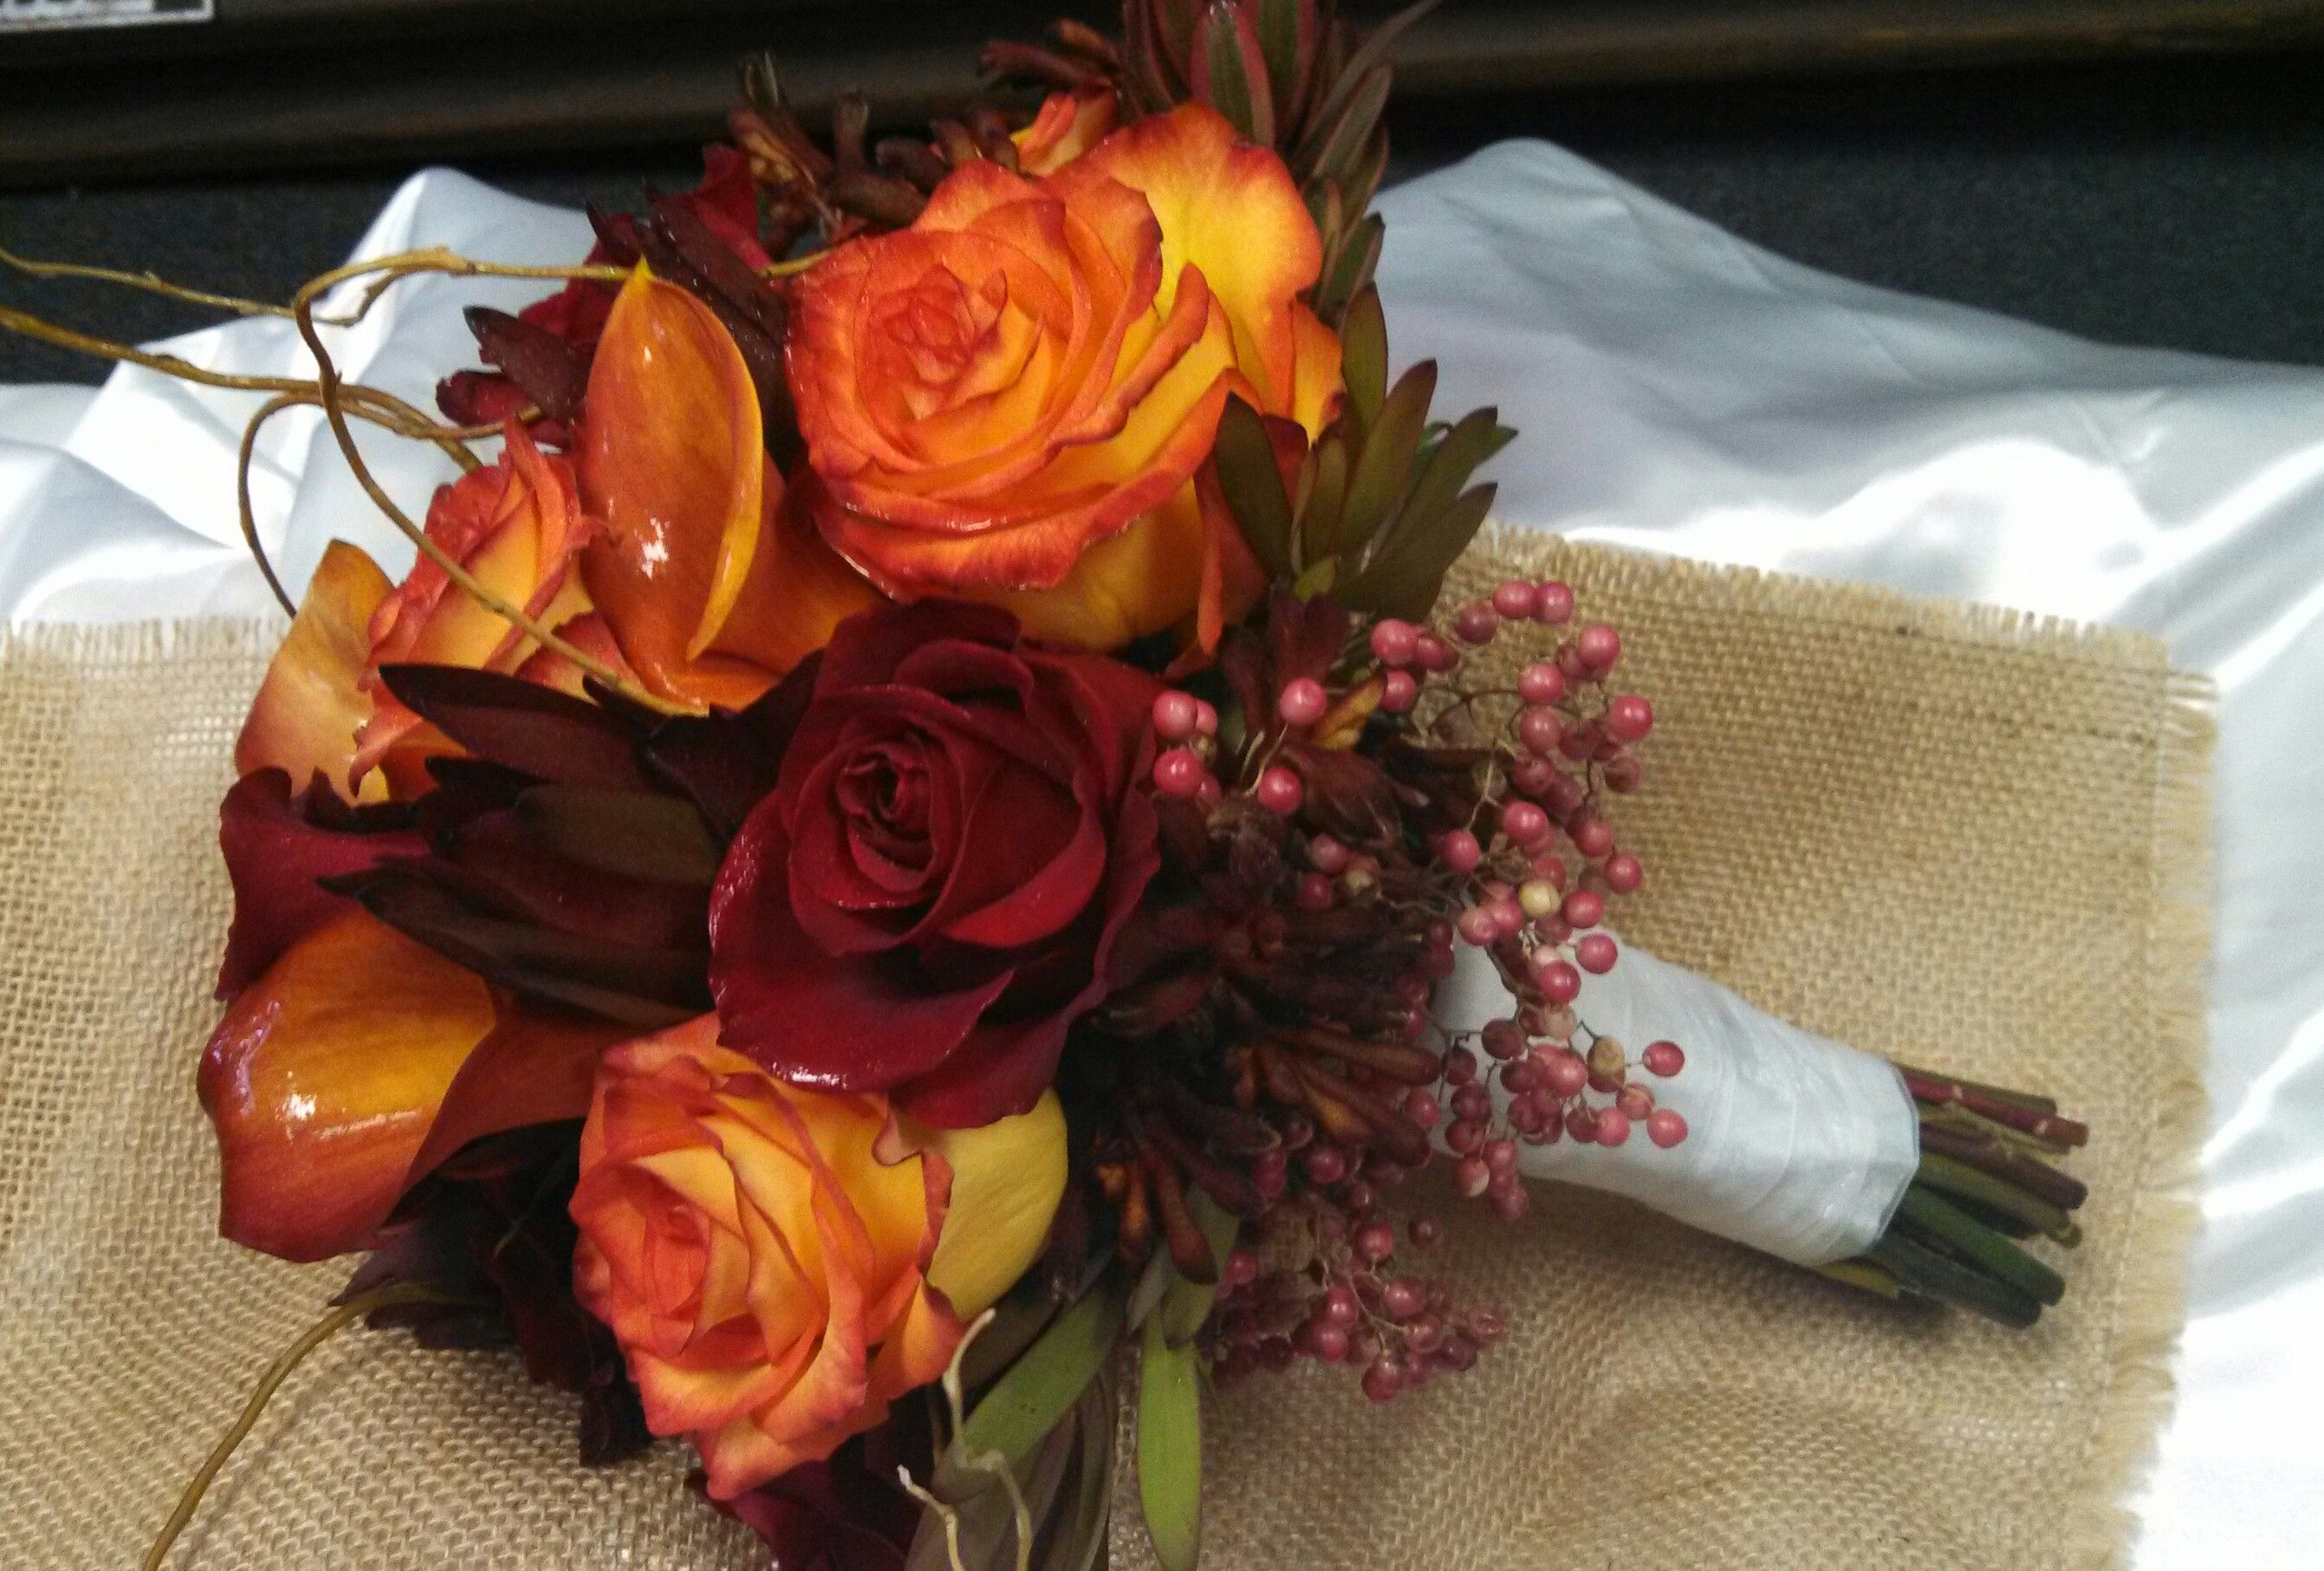 High Magic And Red Roses With Orange Cala Lilies Pepperberry Safari Sunset And Curly Willow Lily Wedding Wedding Flowers Cala Lily